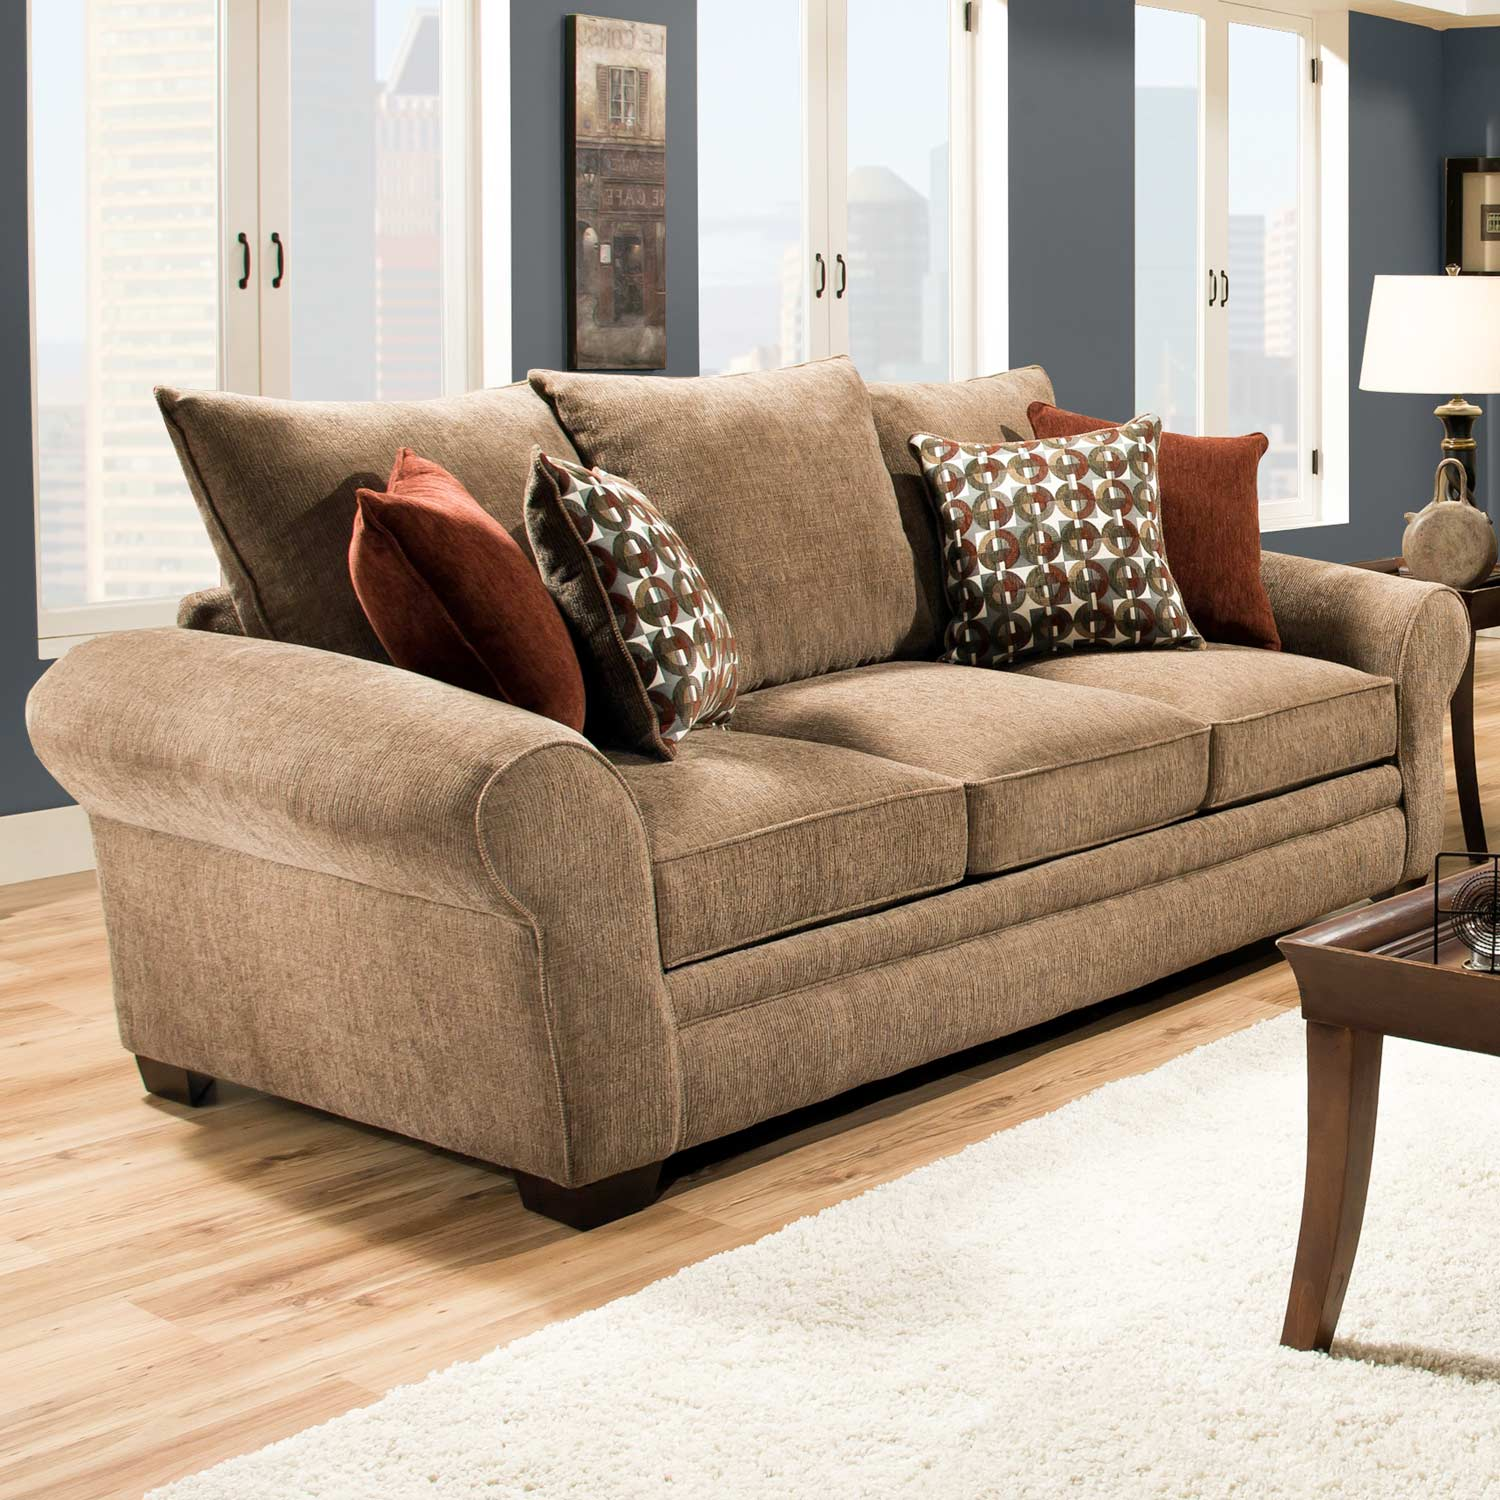 Pillows For Sectional Sofa: Accent Pillows, Resort Harvest